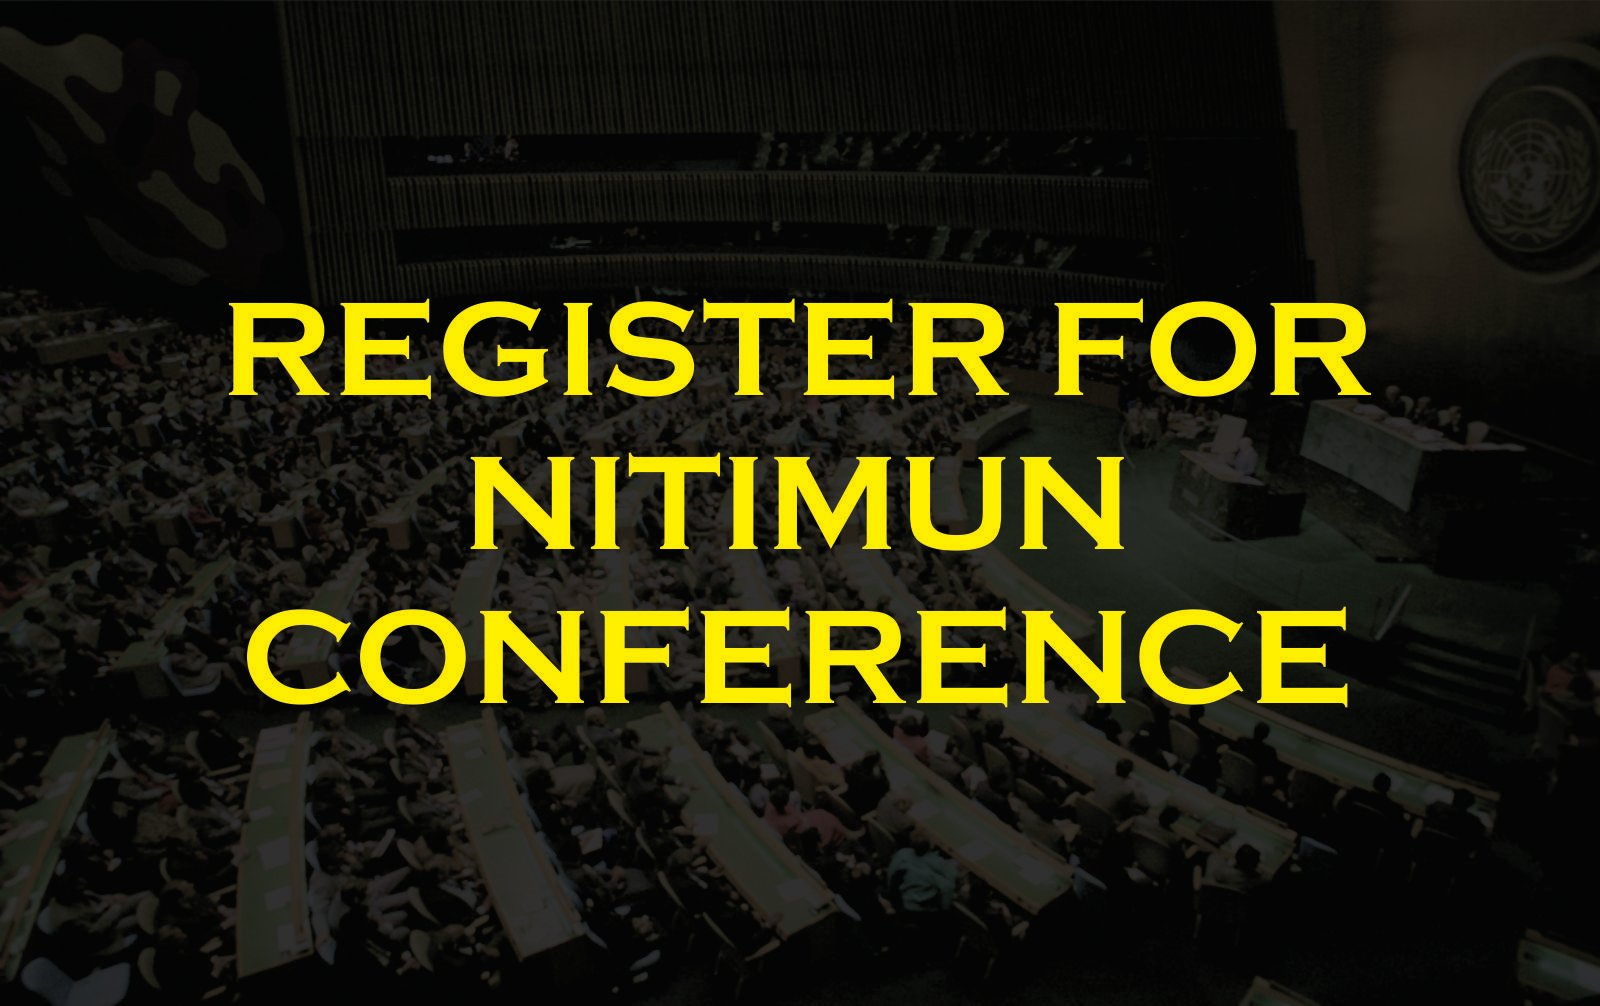 REGISTER FOR NITIMUN CONFERENCE